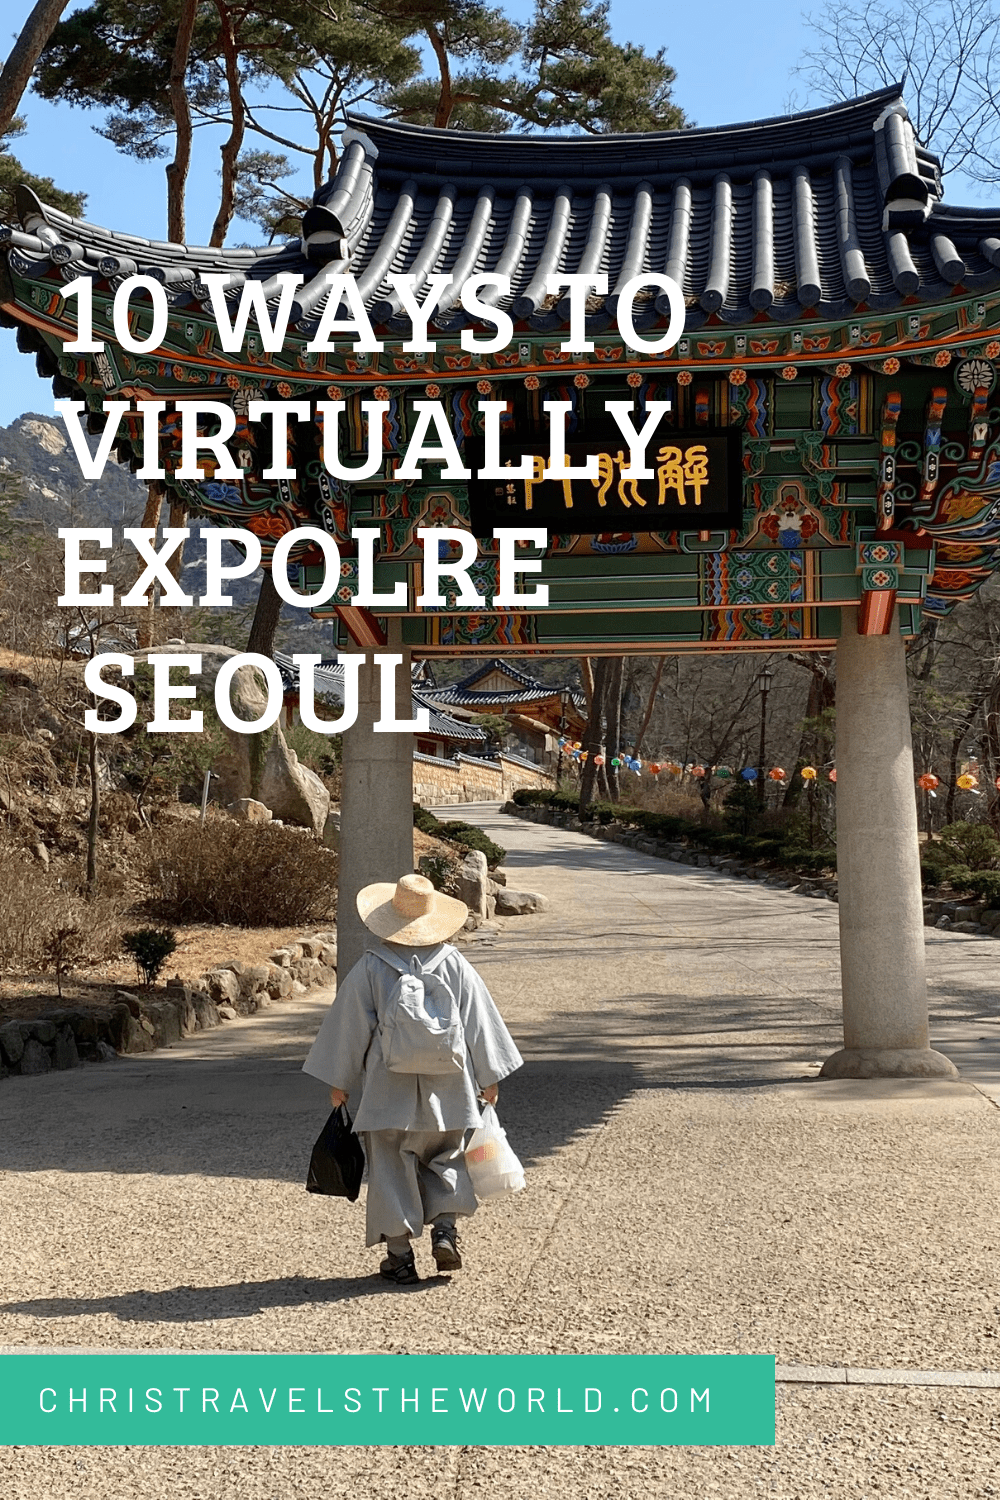 10 Ways to Virtual Explore Seoul